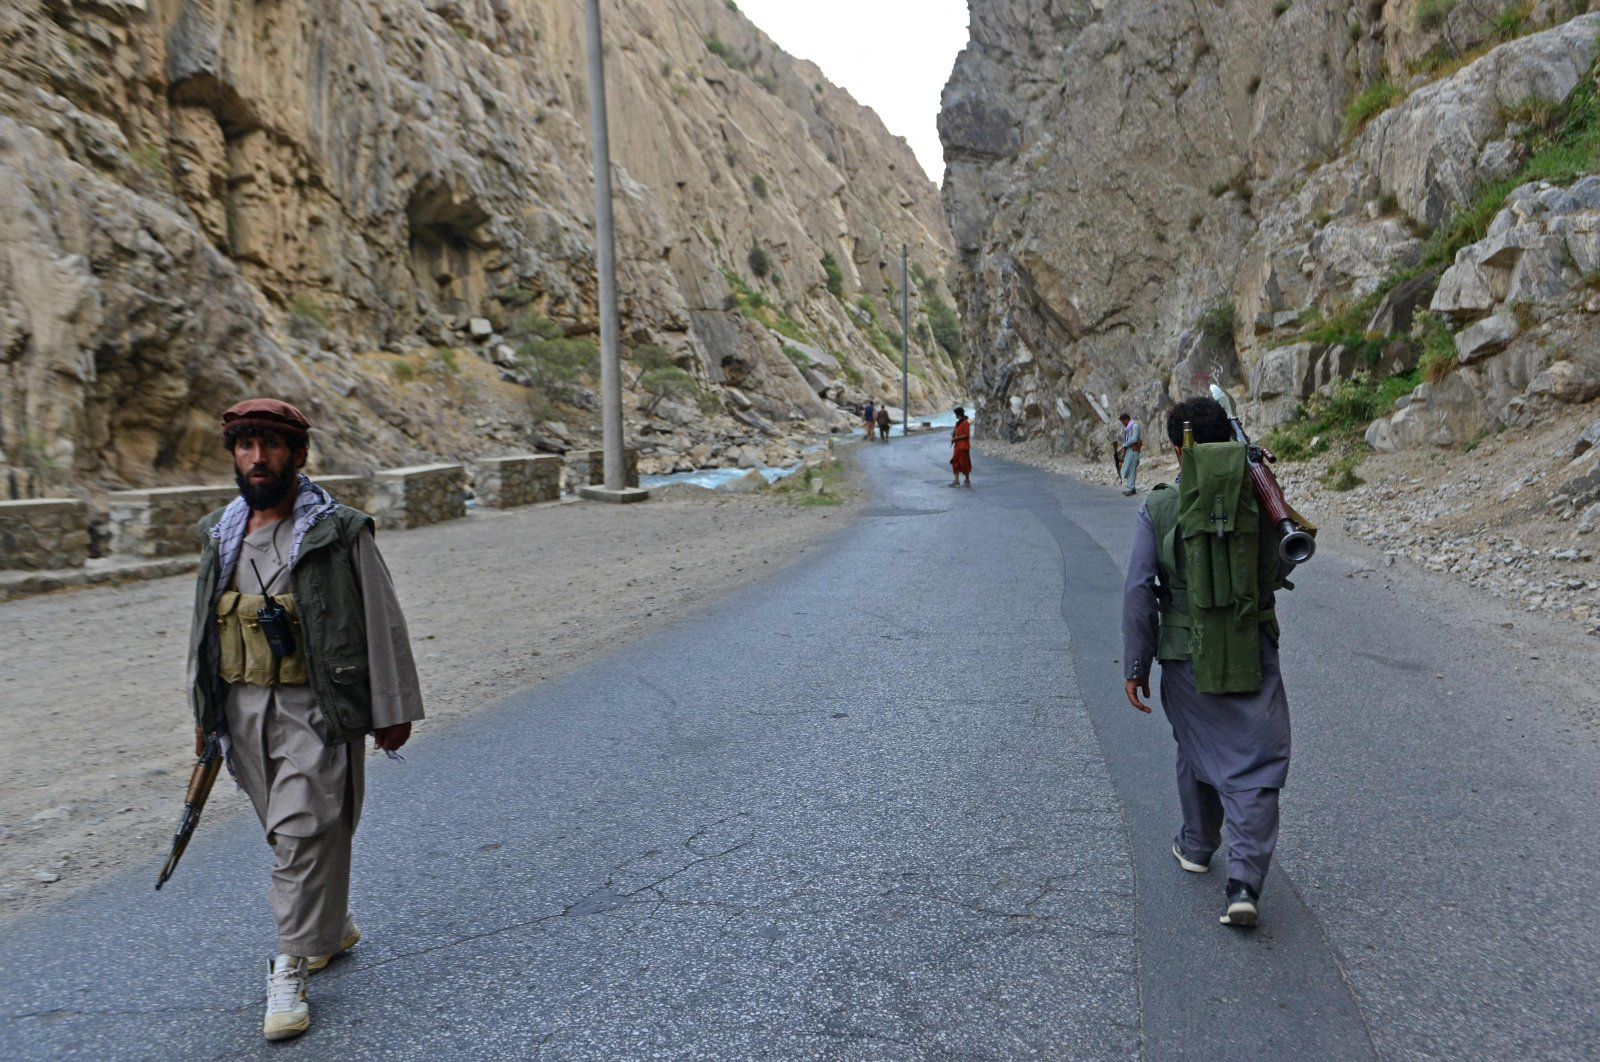 Afghan resistance movement and anti-Taliban uprising forces personnel patrol along a road in Rah-e Tang, Panjshir province, Afghanistan, Aug. 29, 2021. (AFP Photo)